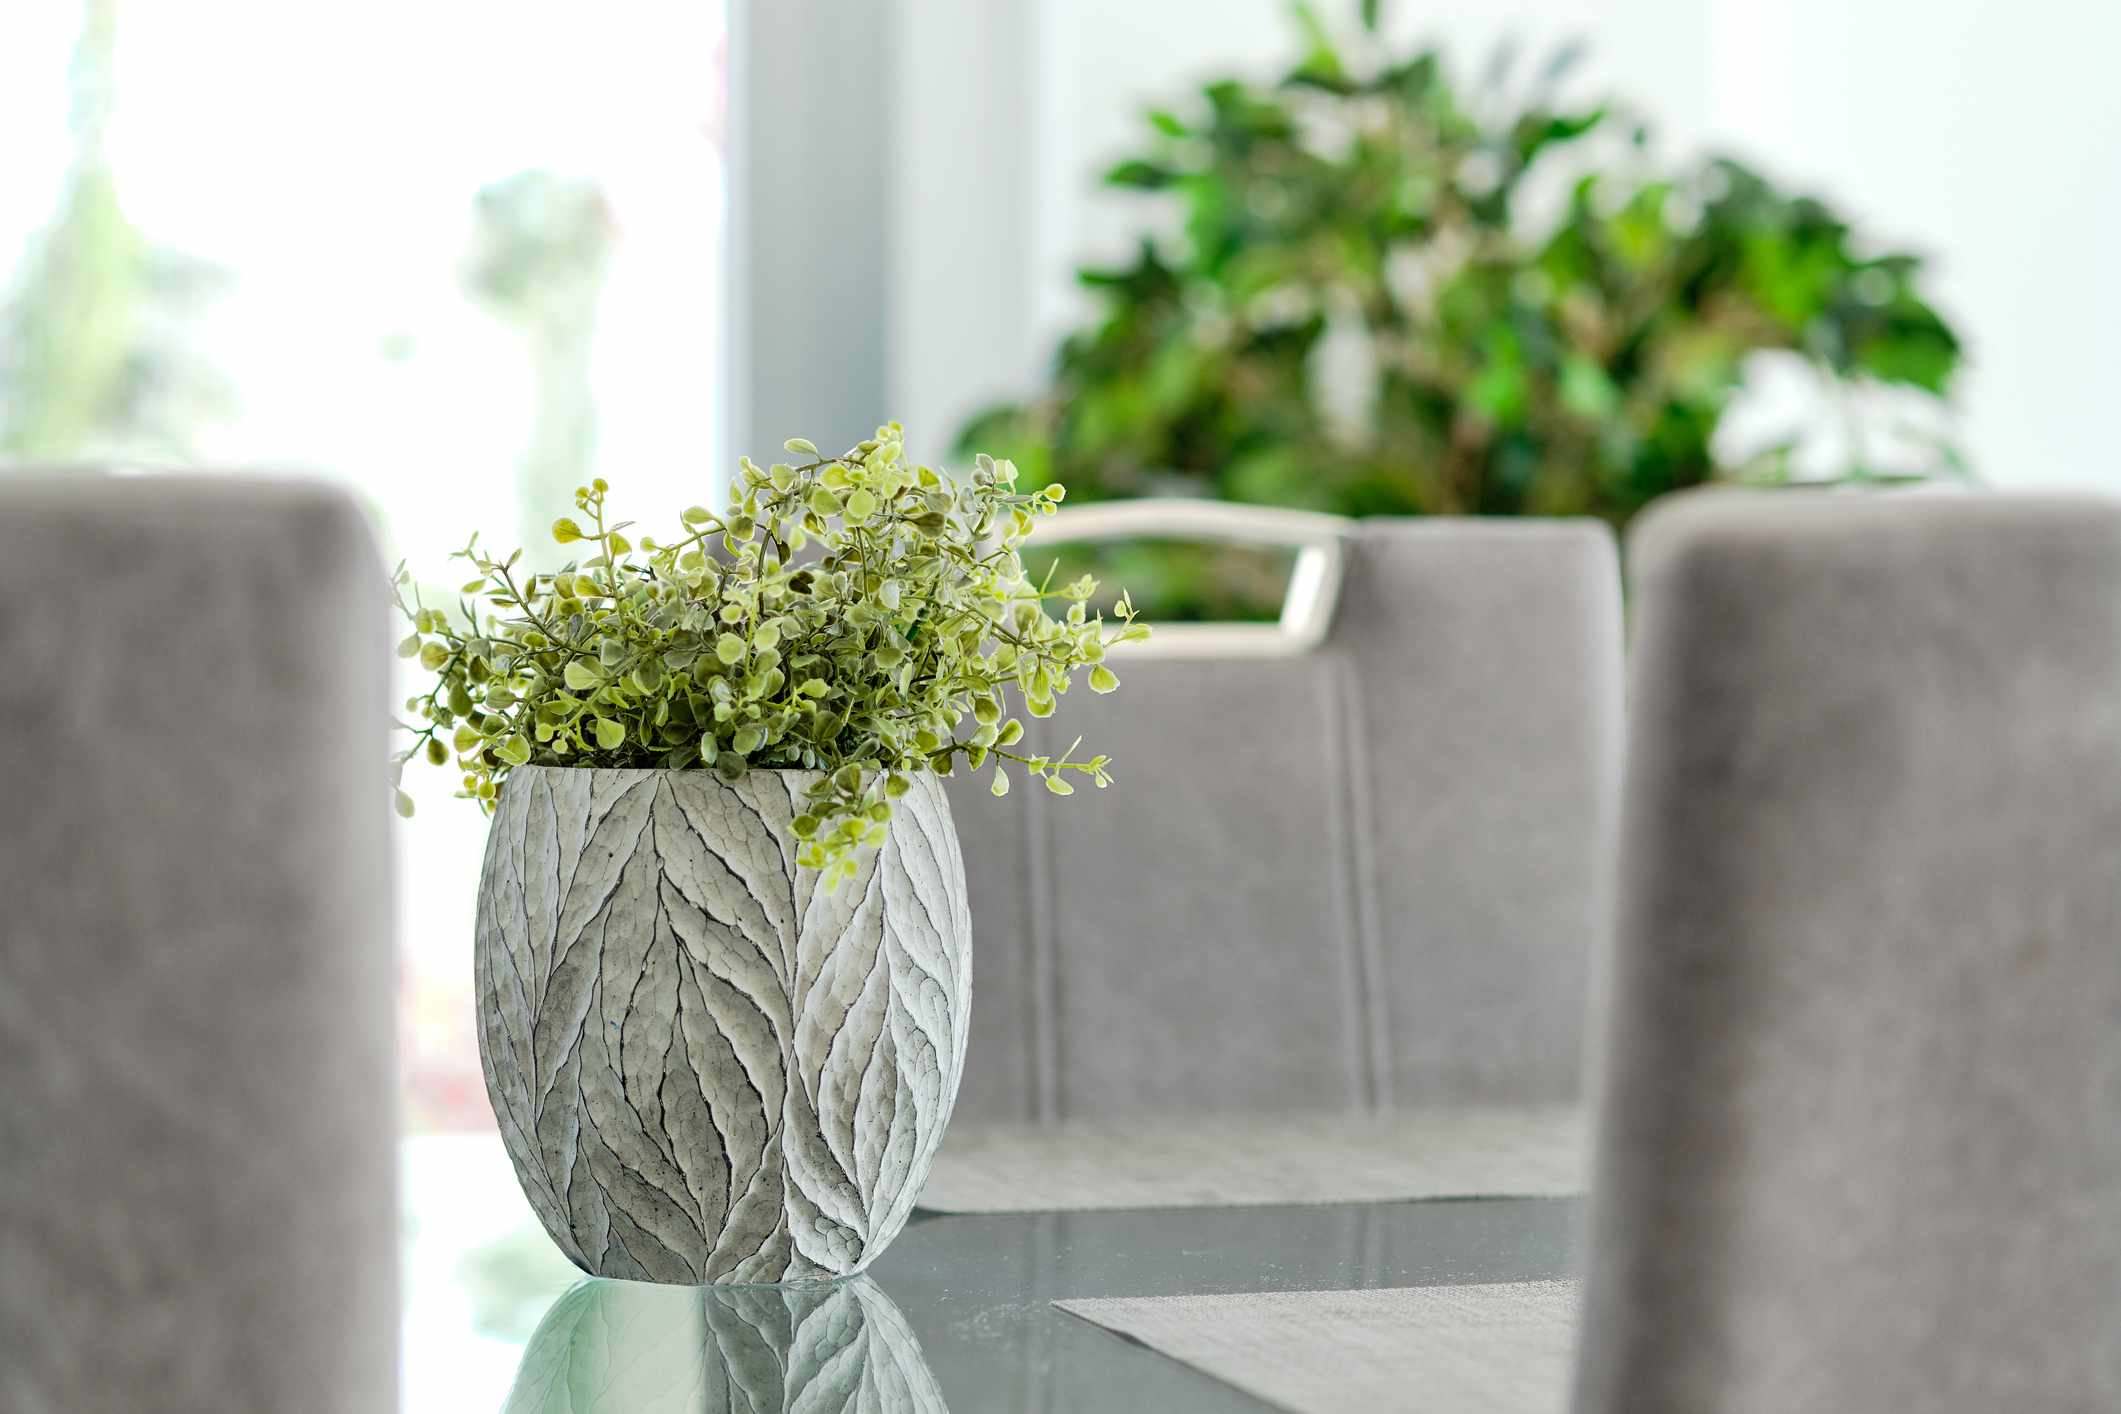 Close-up of potted plant on glass table in living room